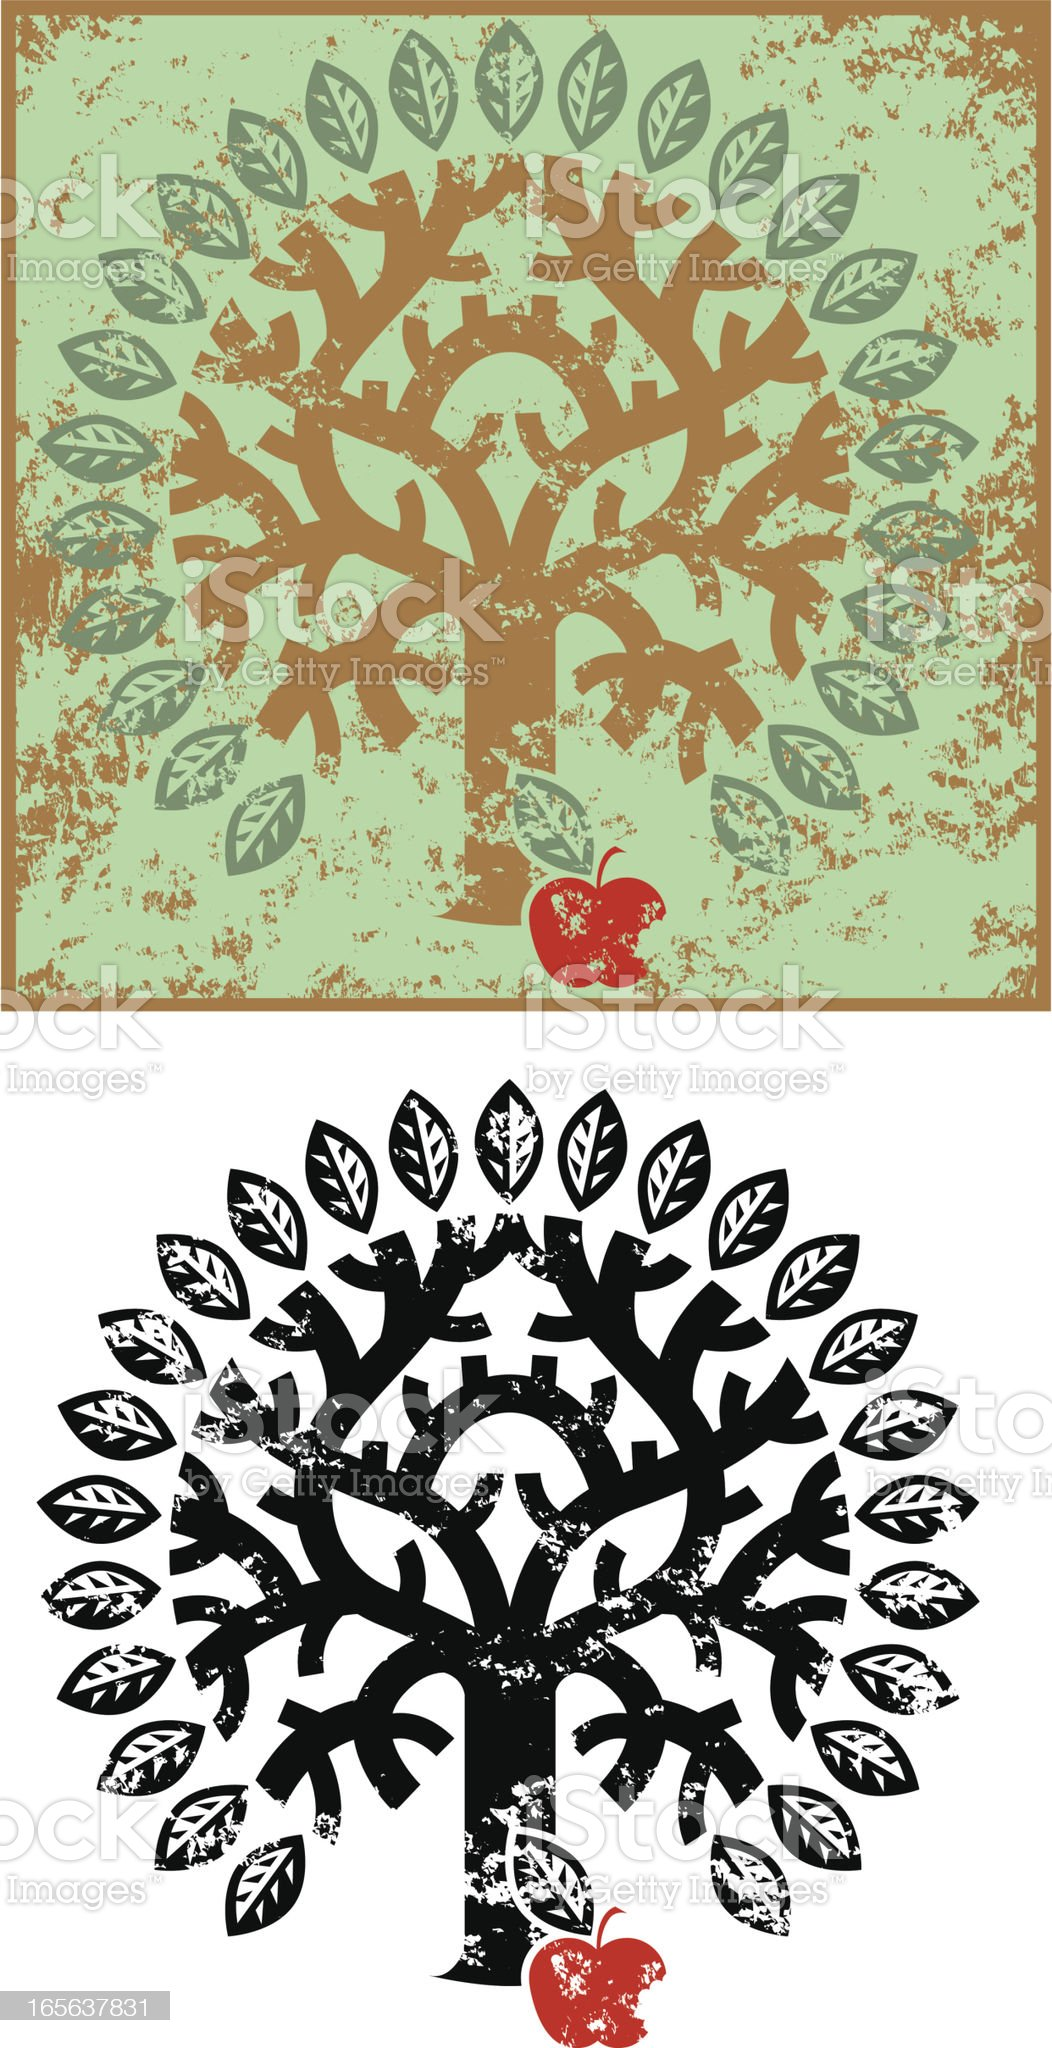 Grunge tree of knowledge royalty-free stock vector art